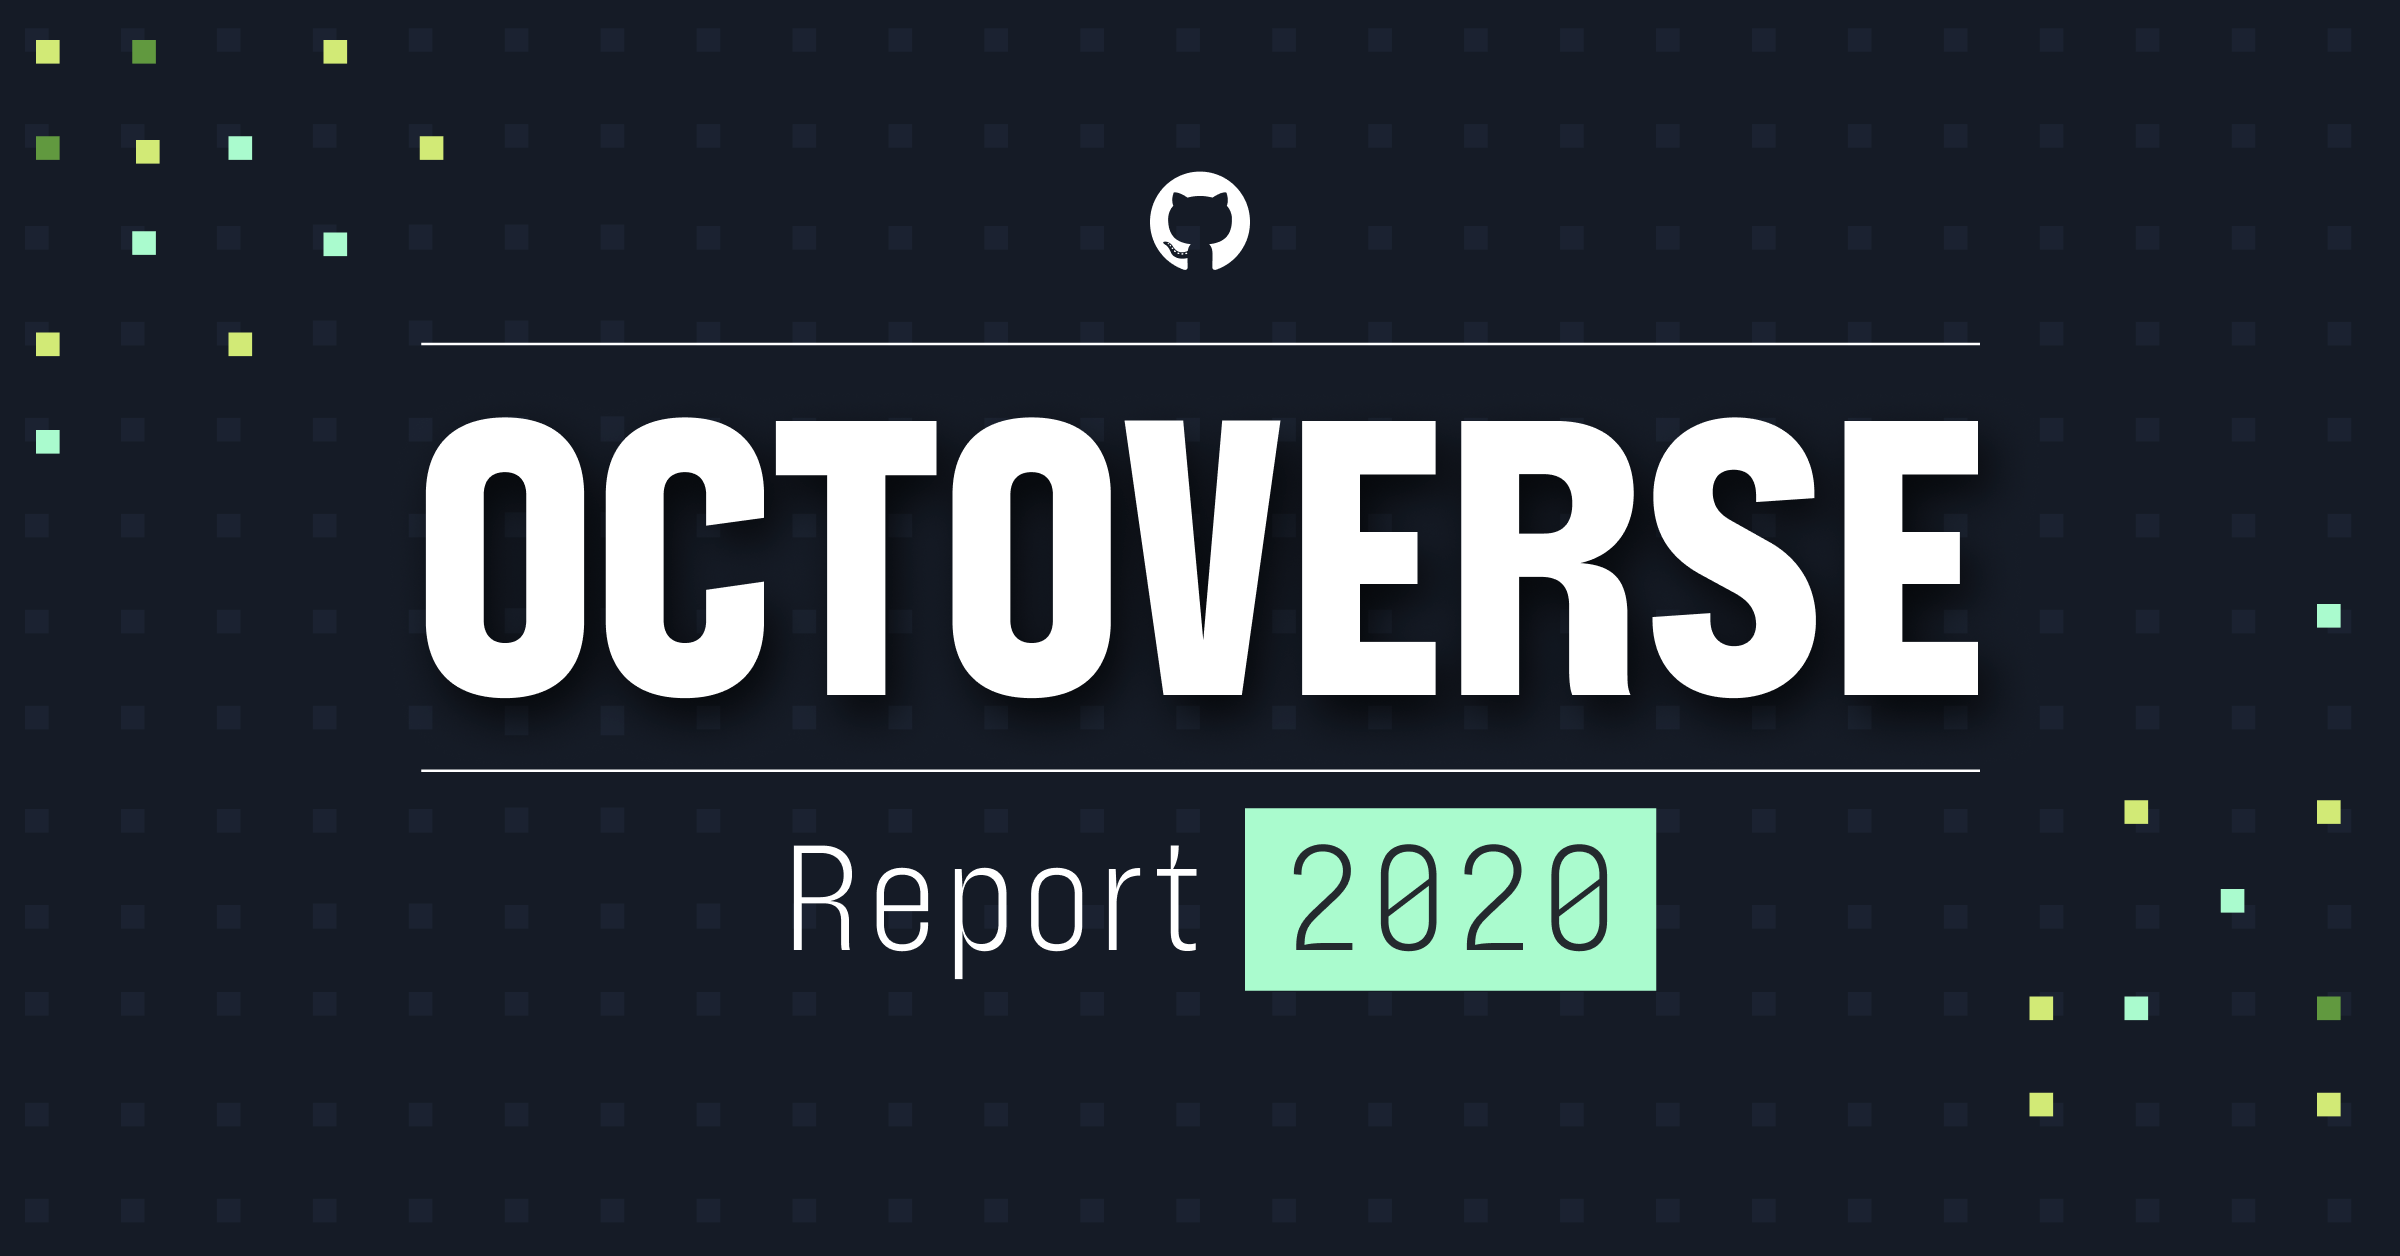 The State of the Octoverse 2020 - The GitHub Blog